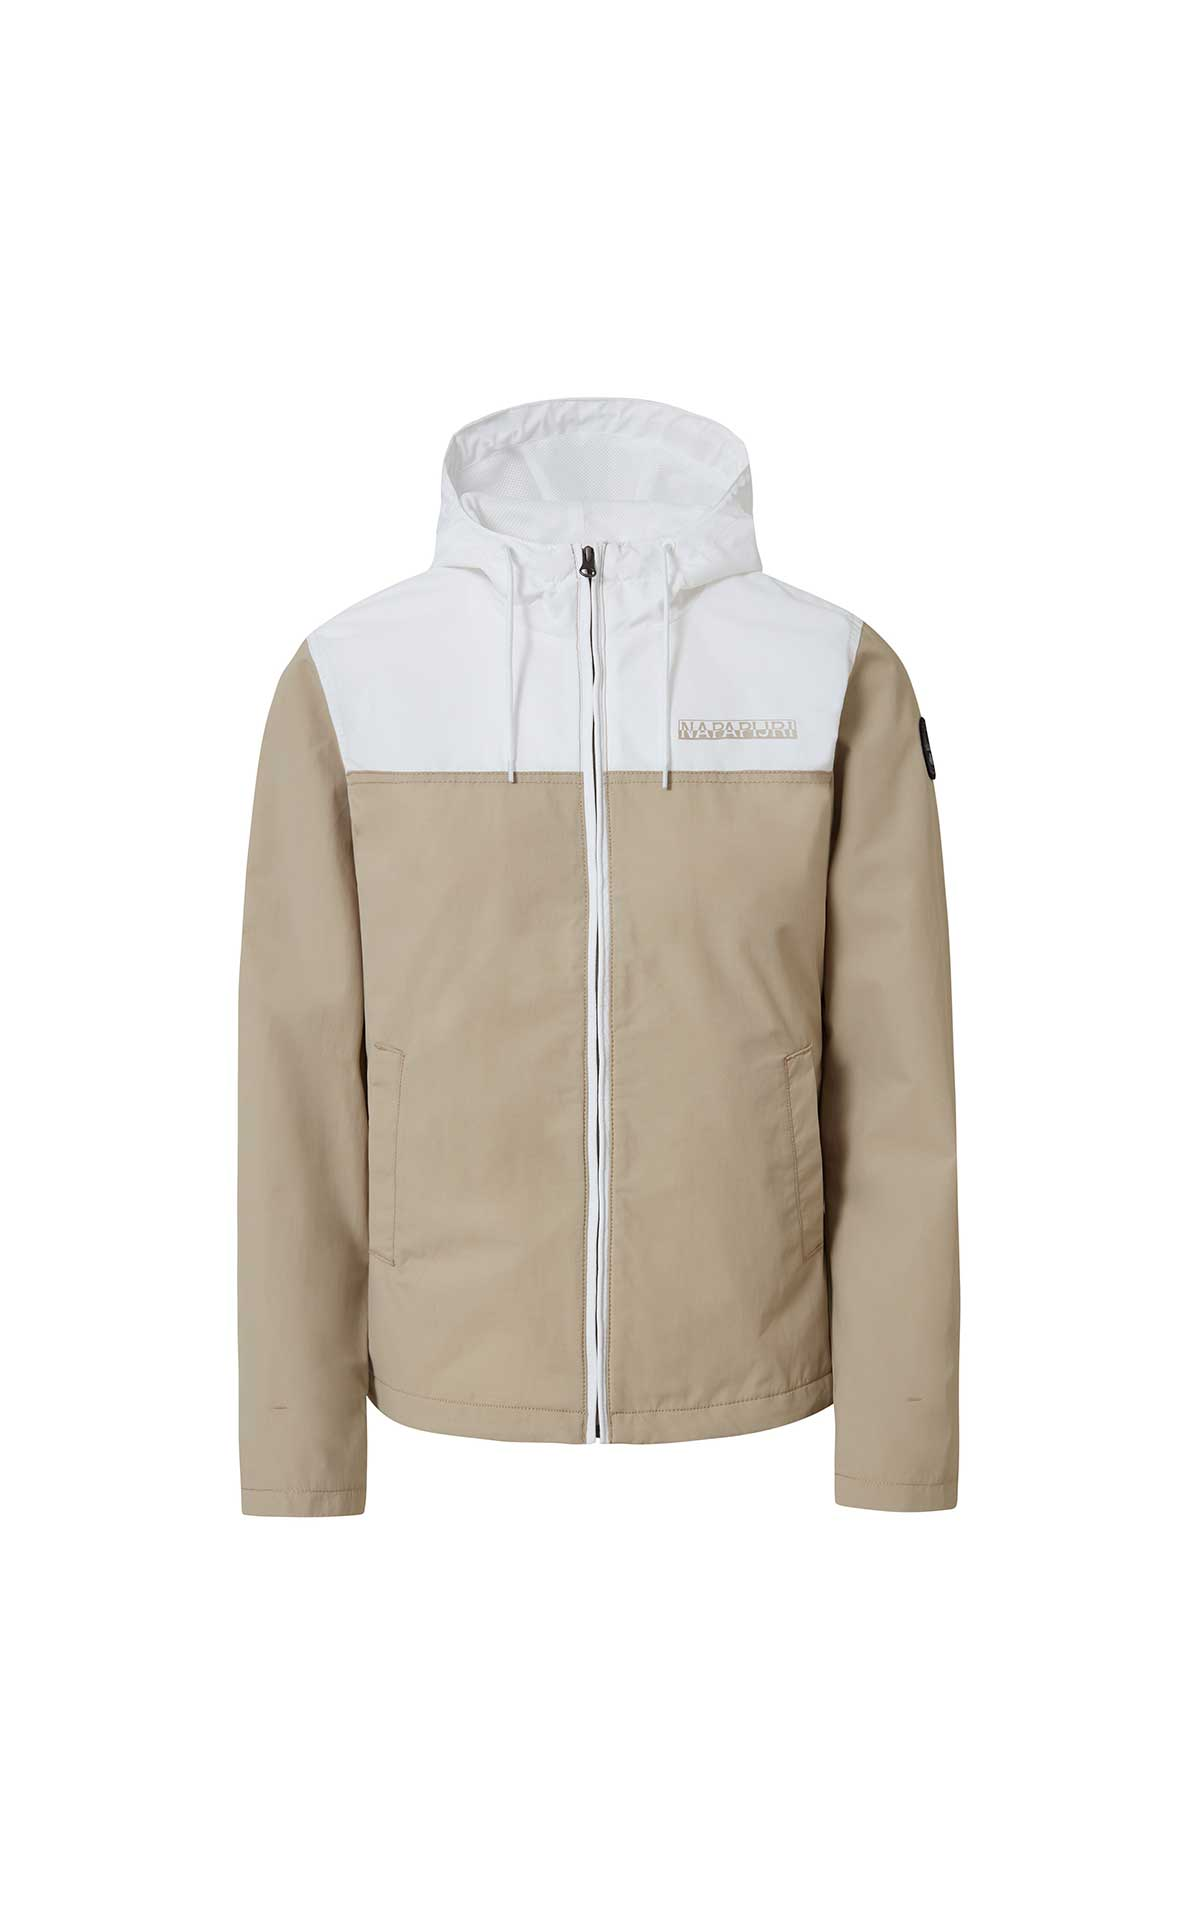 Beige and white man jacket Napapijri